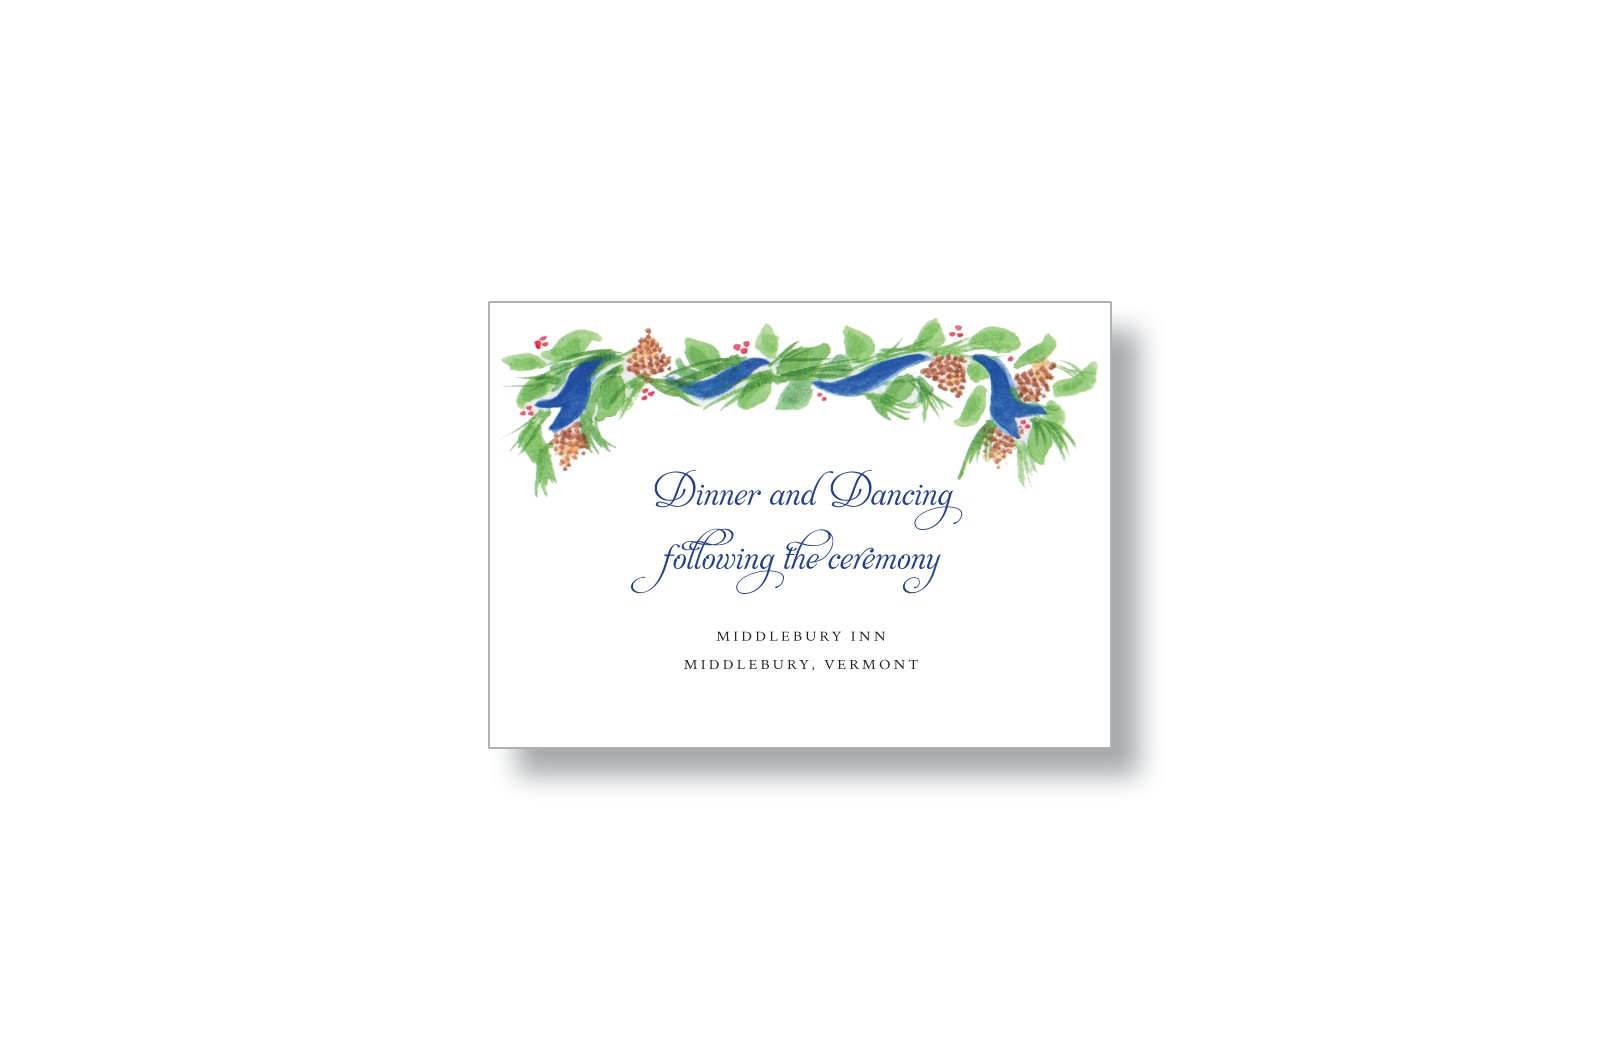 Brushed Pine Wedding Reception Cards from Marry Moment